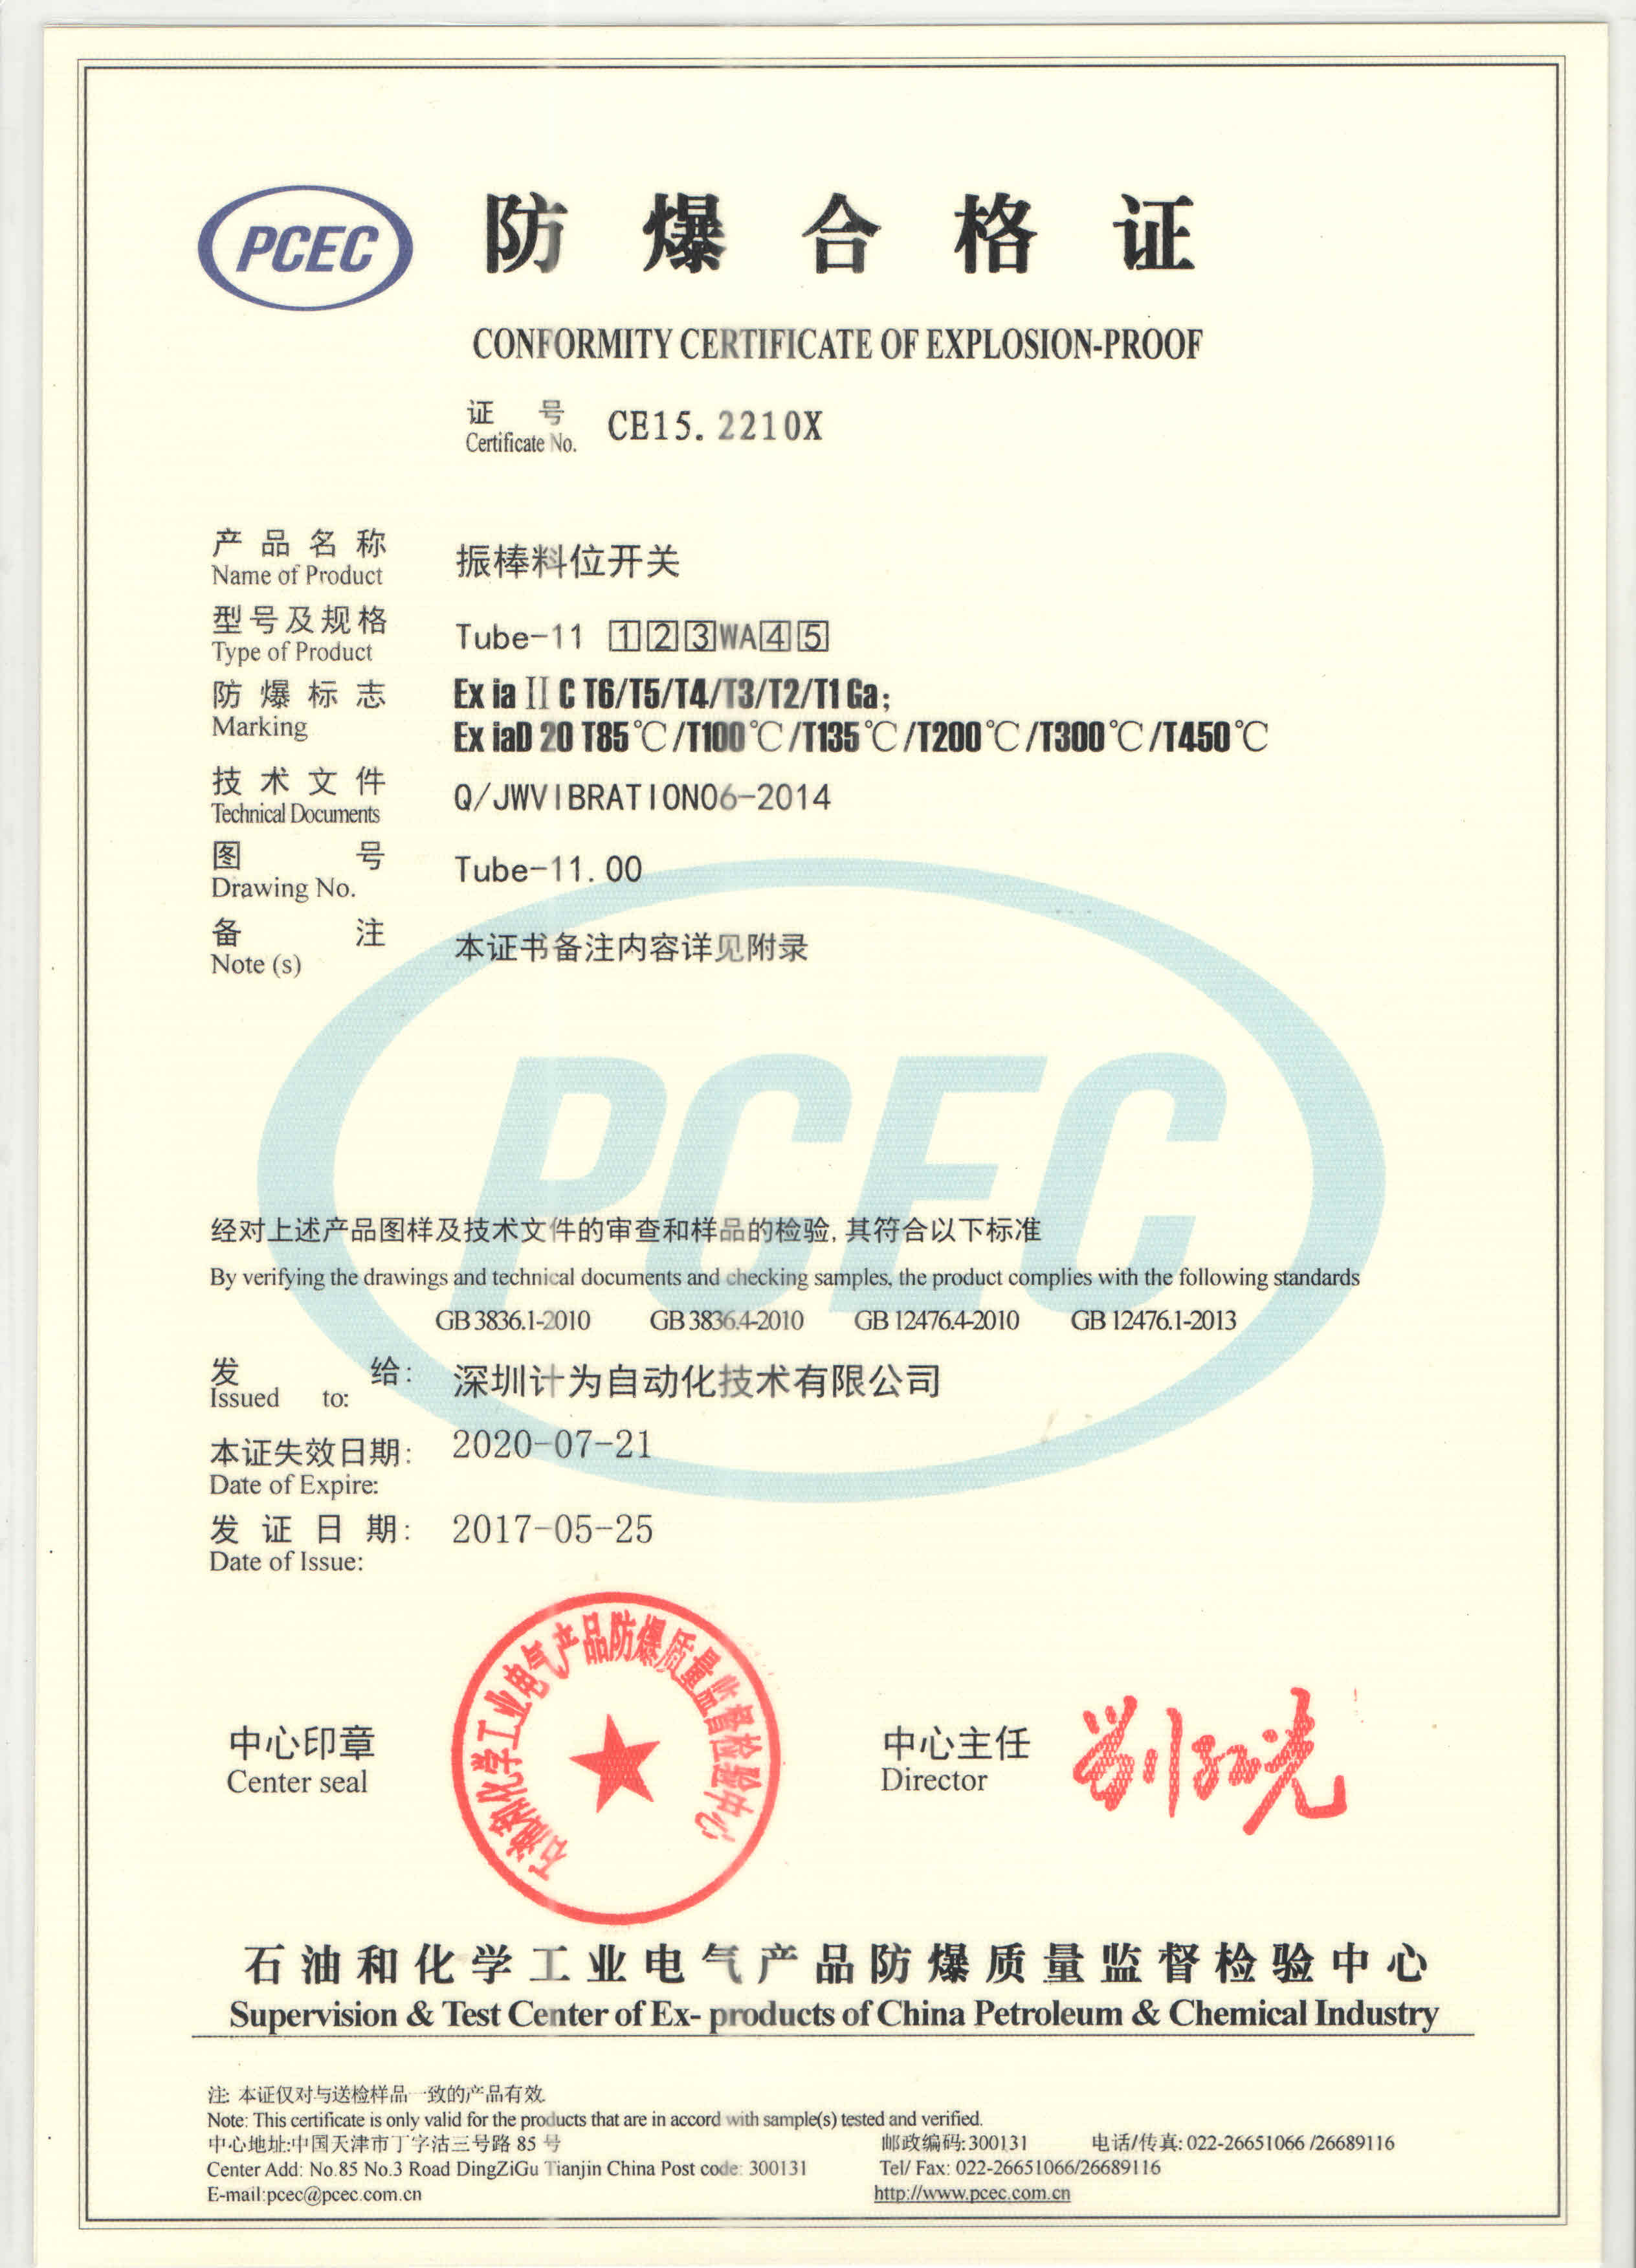 Dust Intrinsic-Safe Certification of Tube-11 Vibrating Rod Level Switch